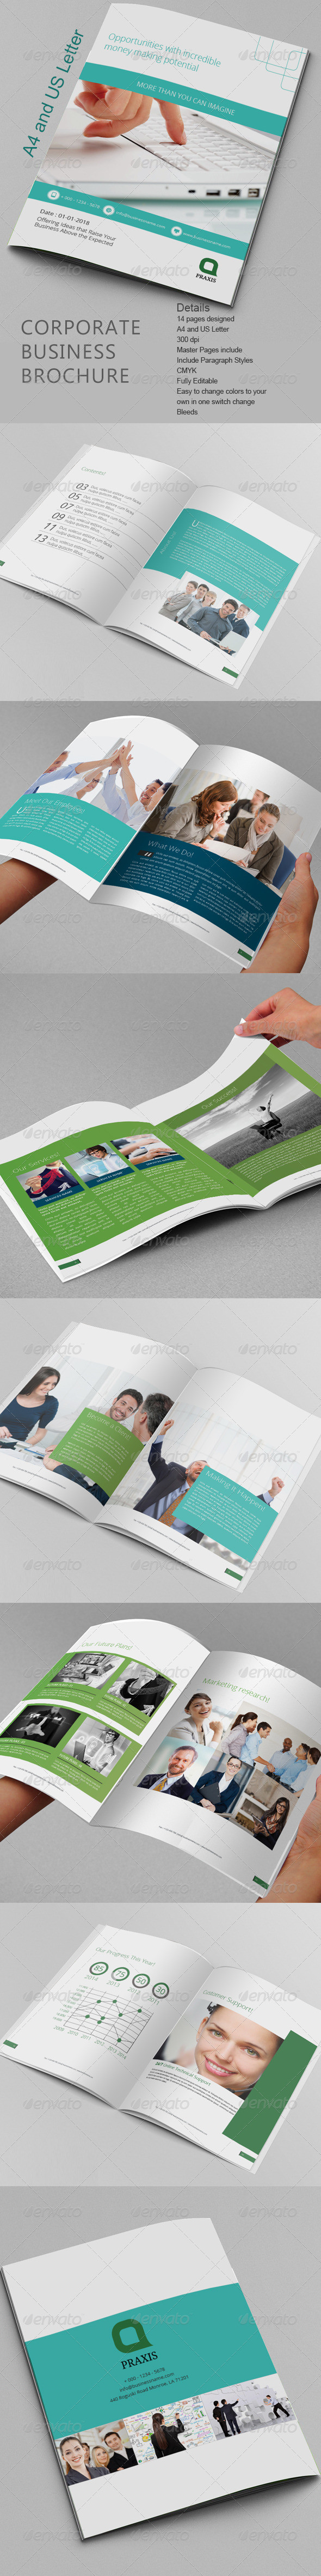 GraphicRiver Corporate Business Brochure 8323481